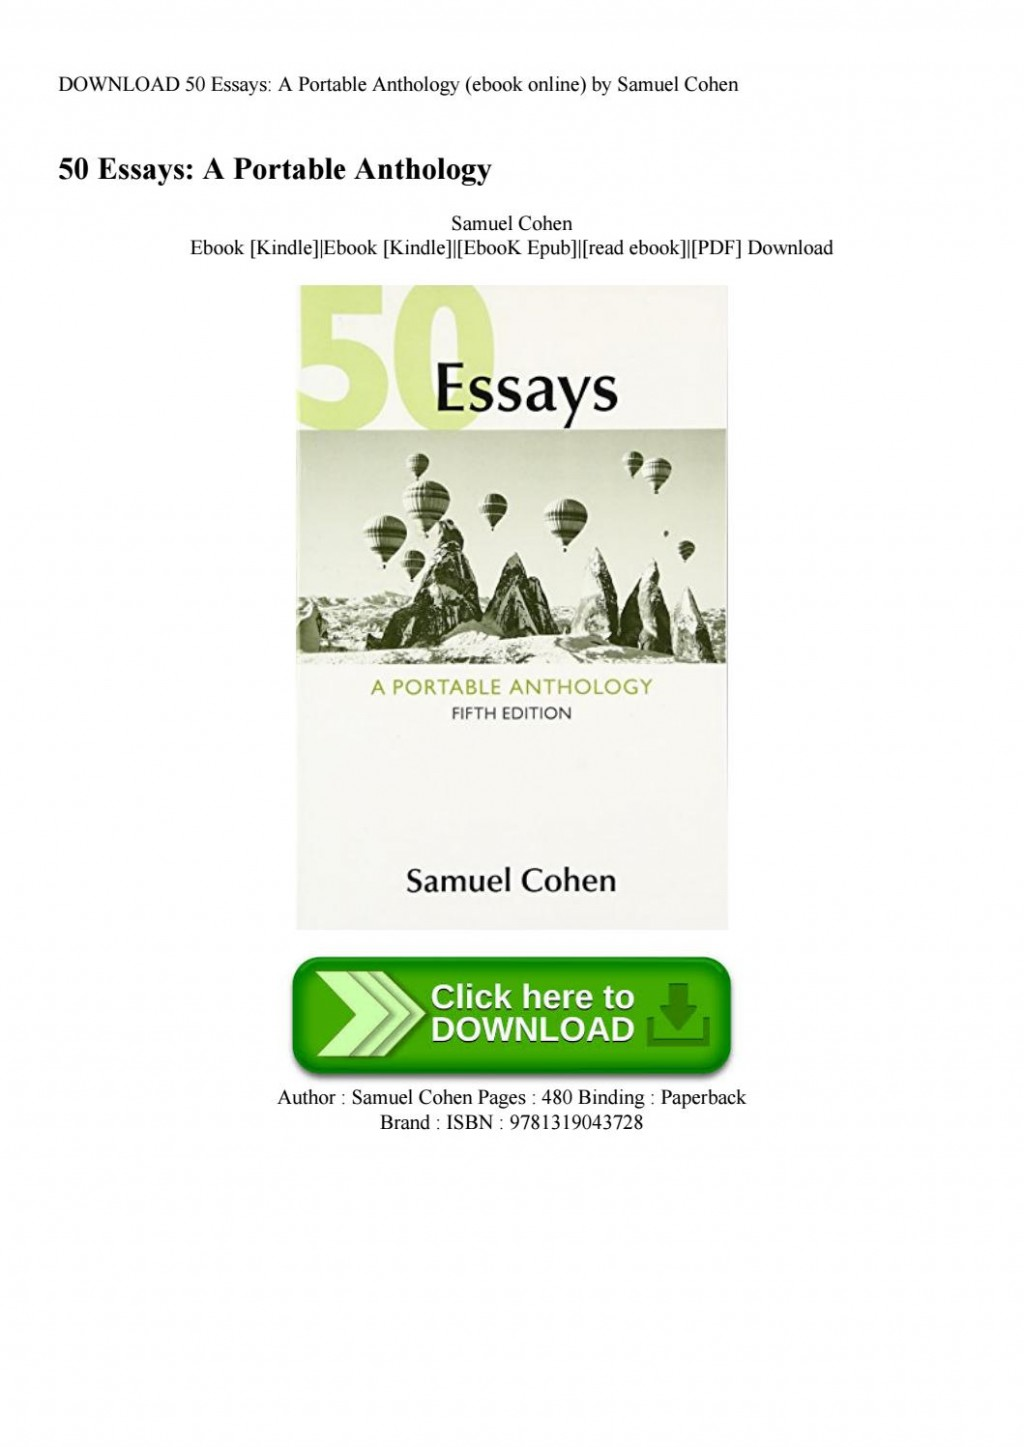 007 Essays 5th Edition Page 1 Essay Imposing 50 Fifty Great Pdf Free A Portable Anthology Ebook Large